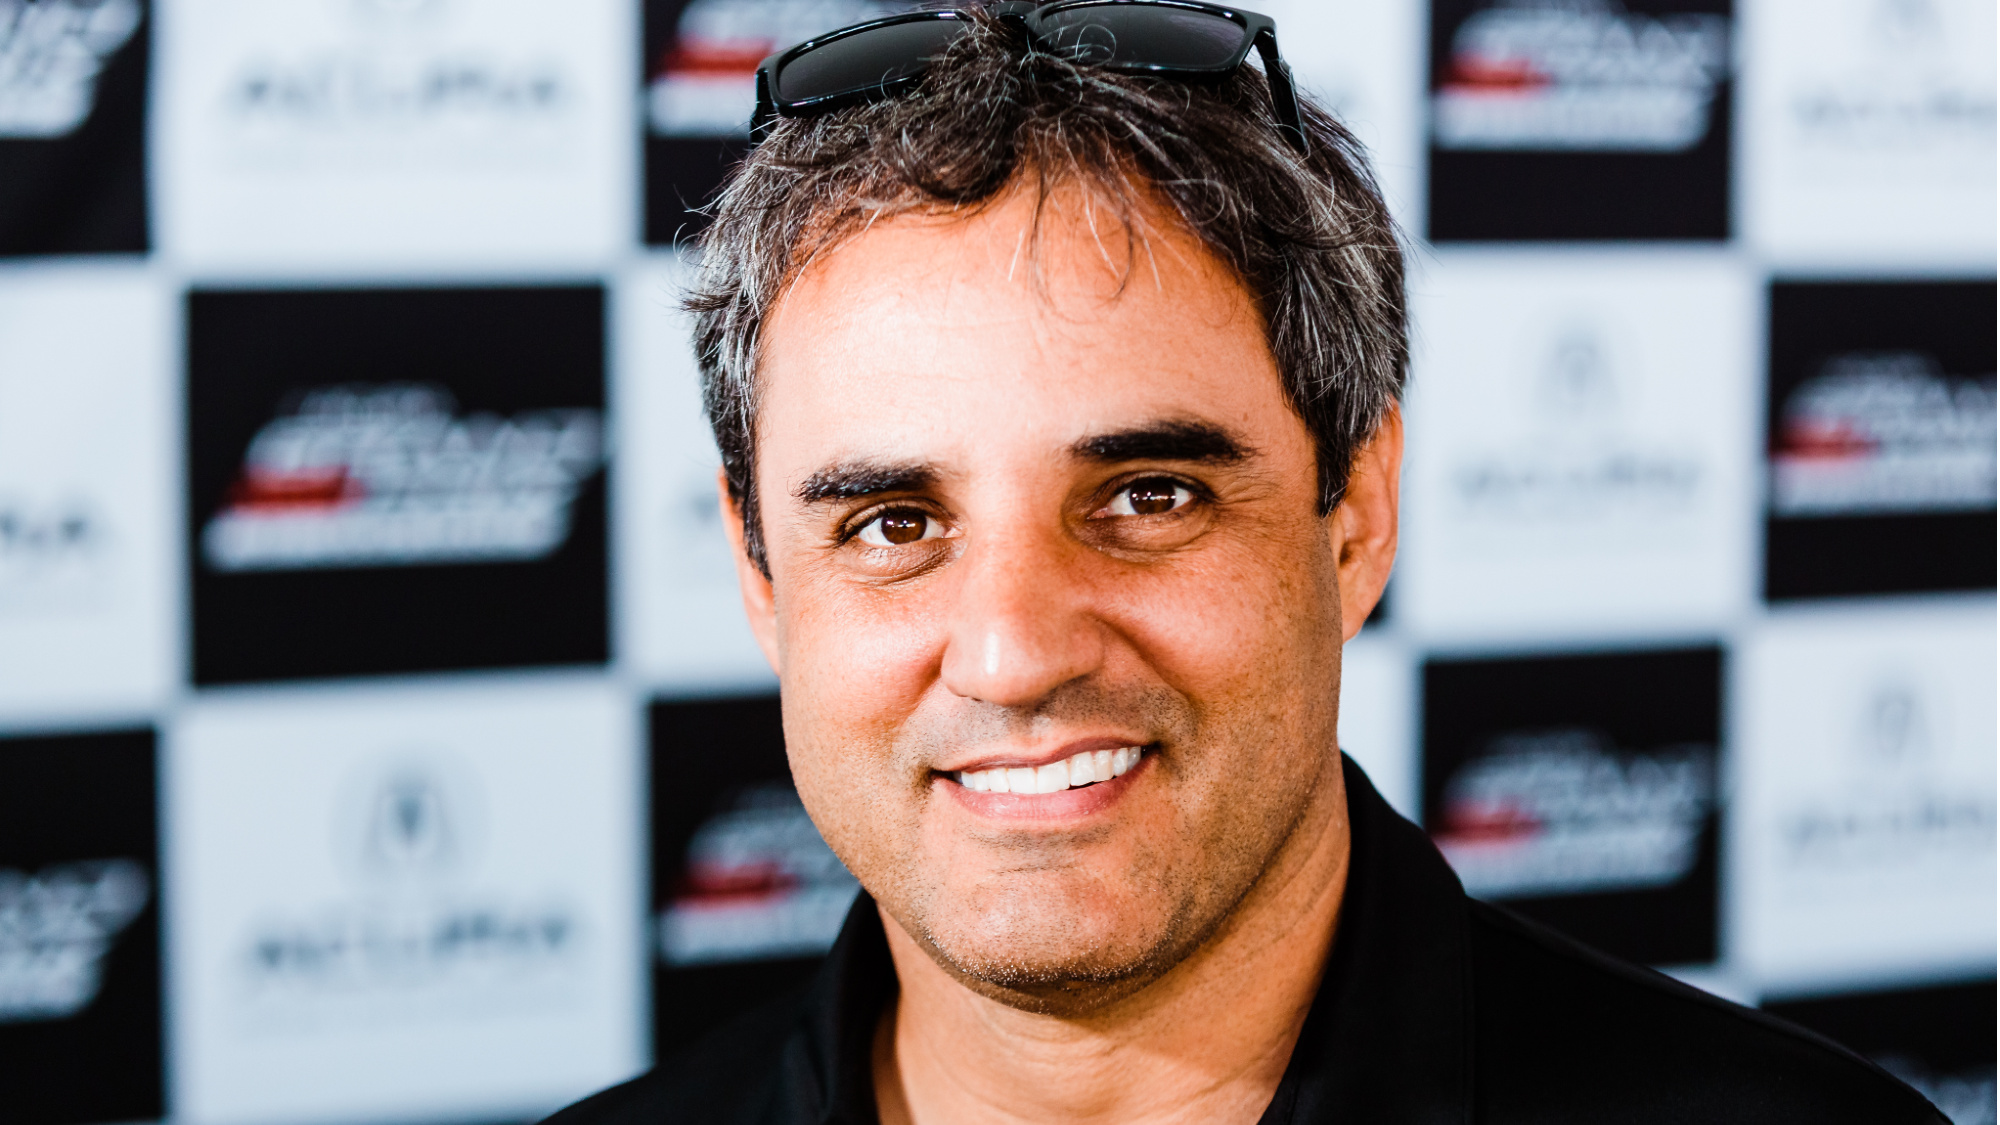 Juan Pablo Montoya to race in 2021 Indy 500 with McLaren SP